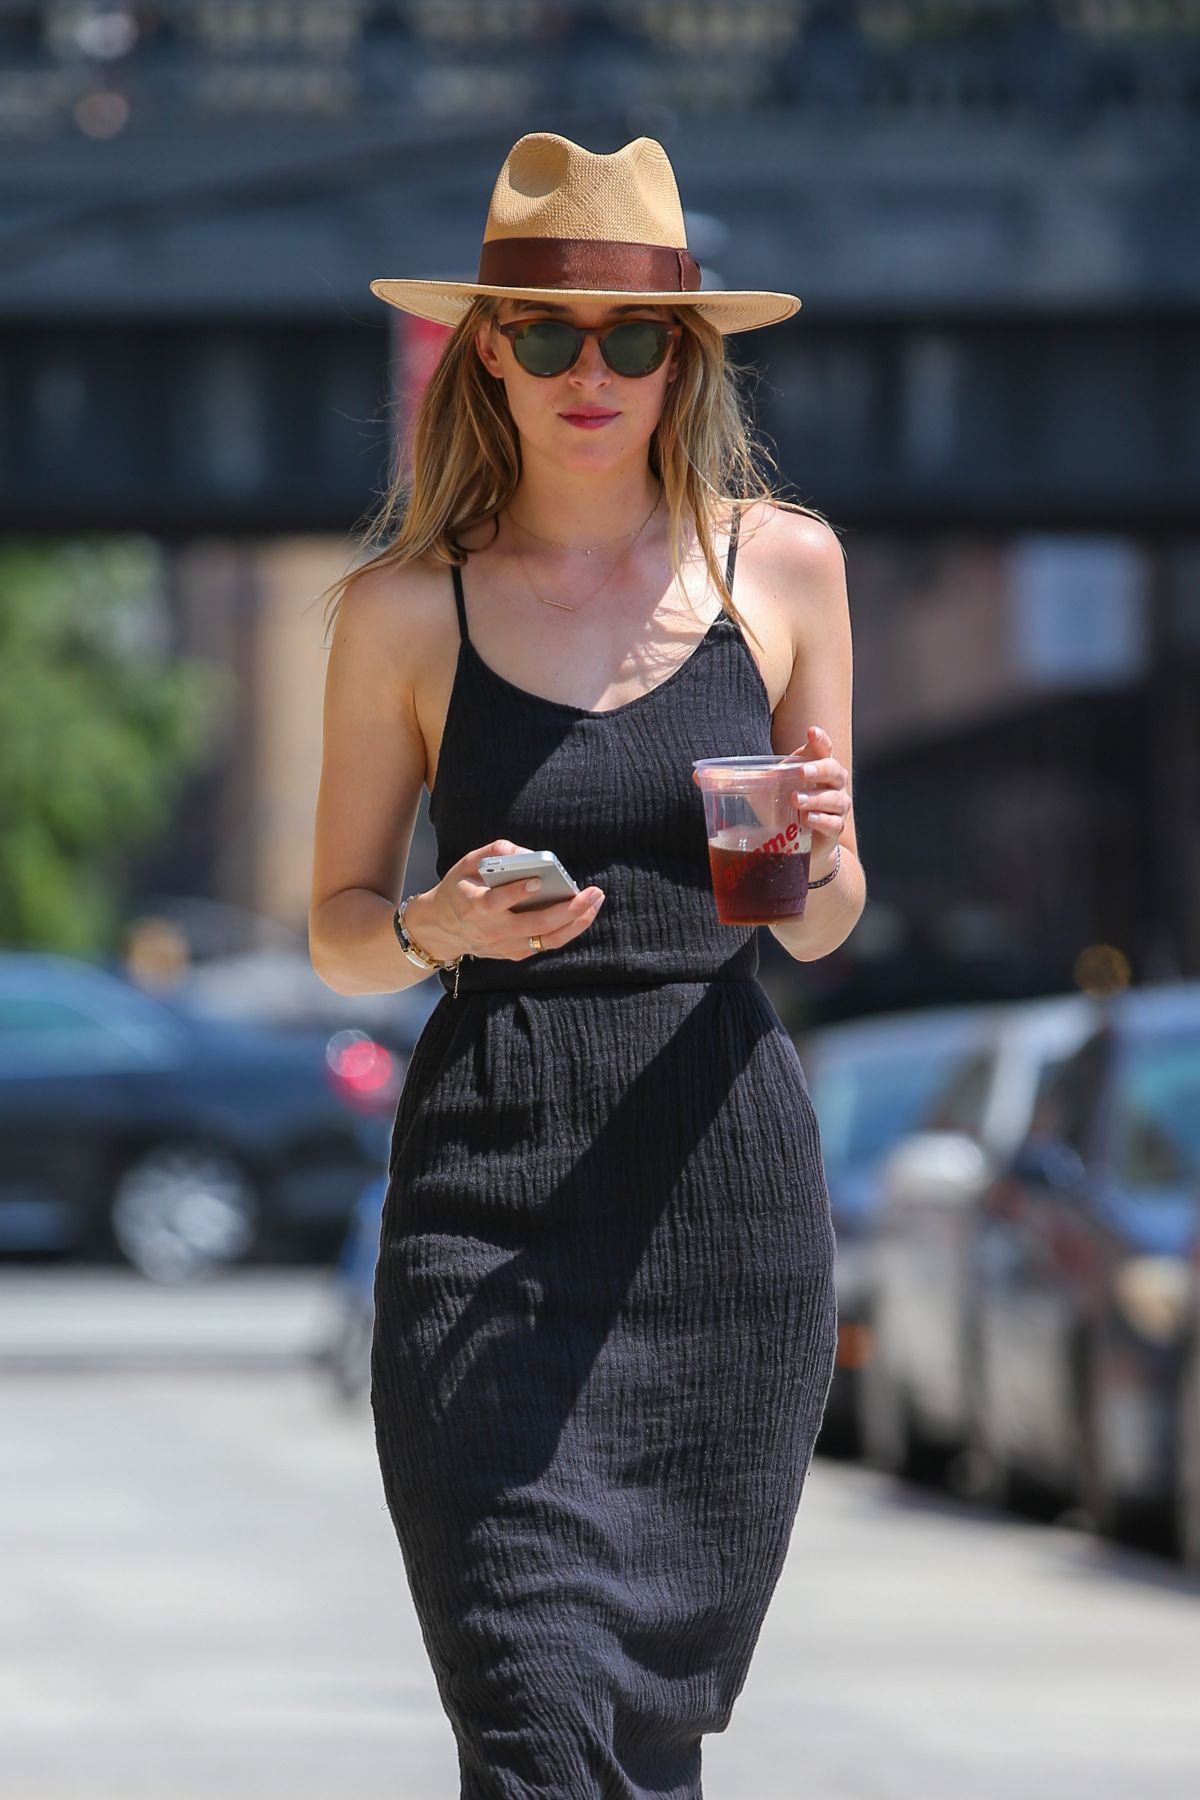 DAKOTA JOHNSON in Black Dress Out in New York